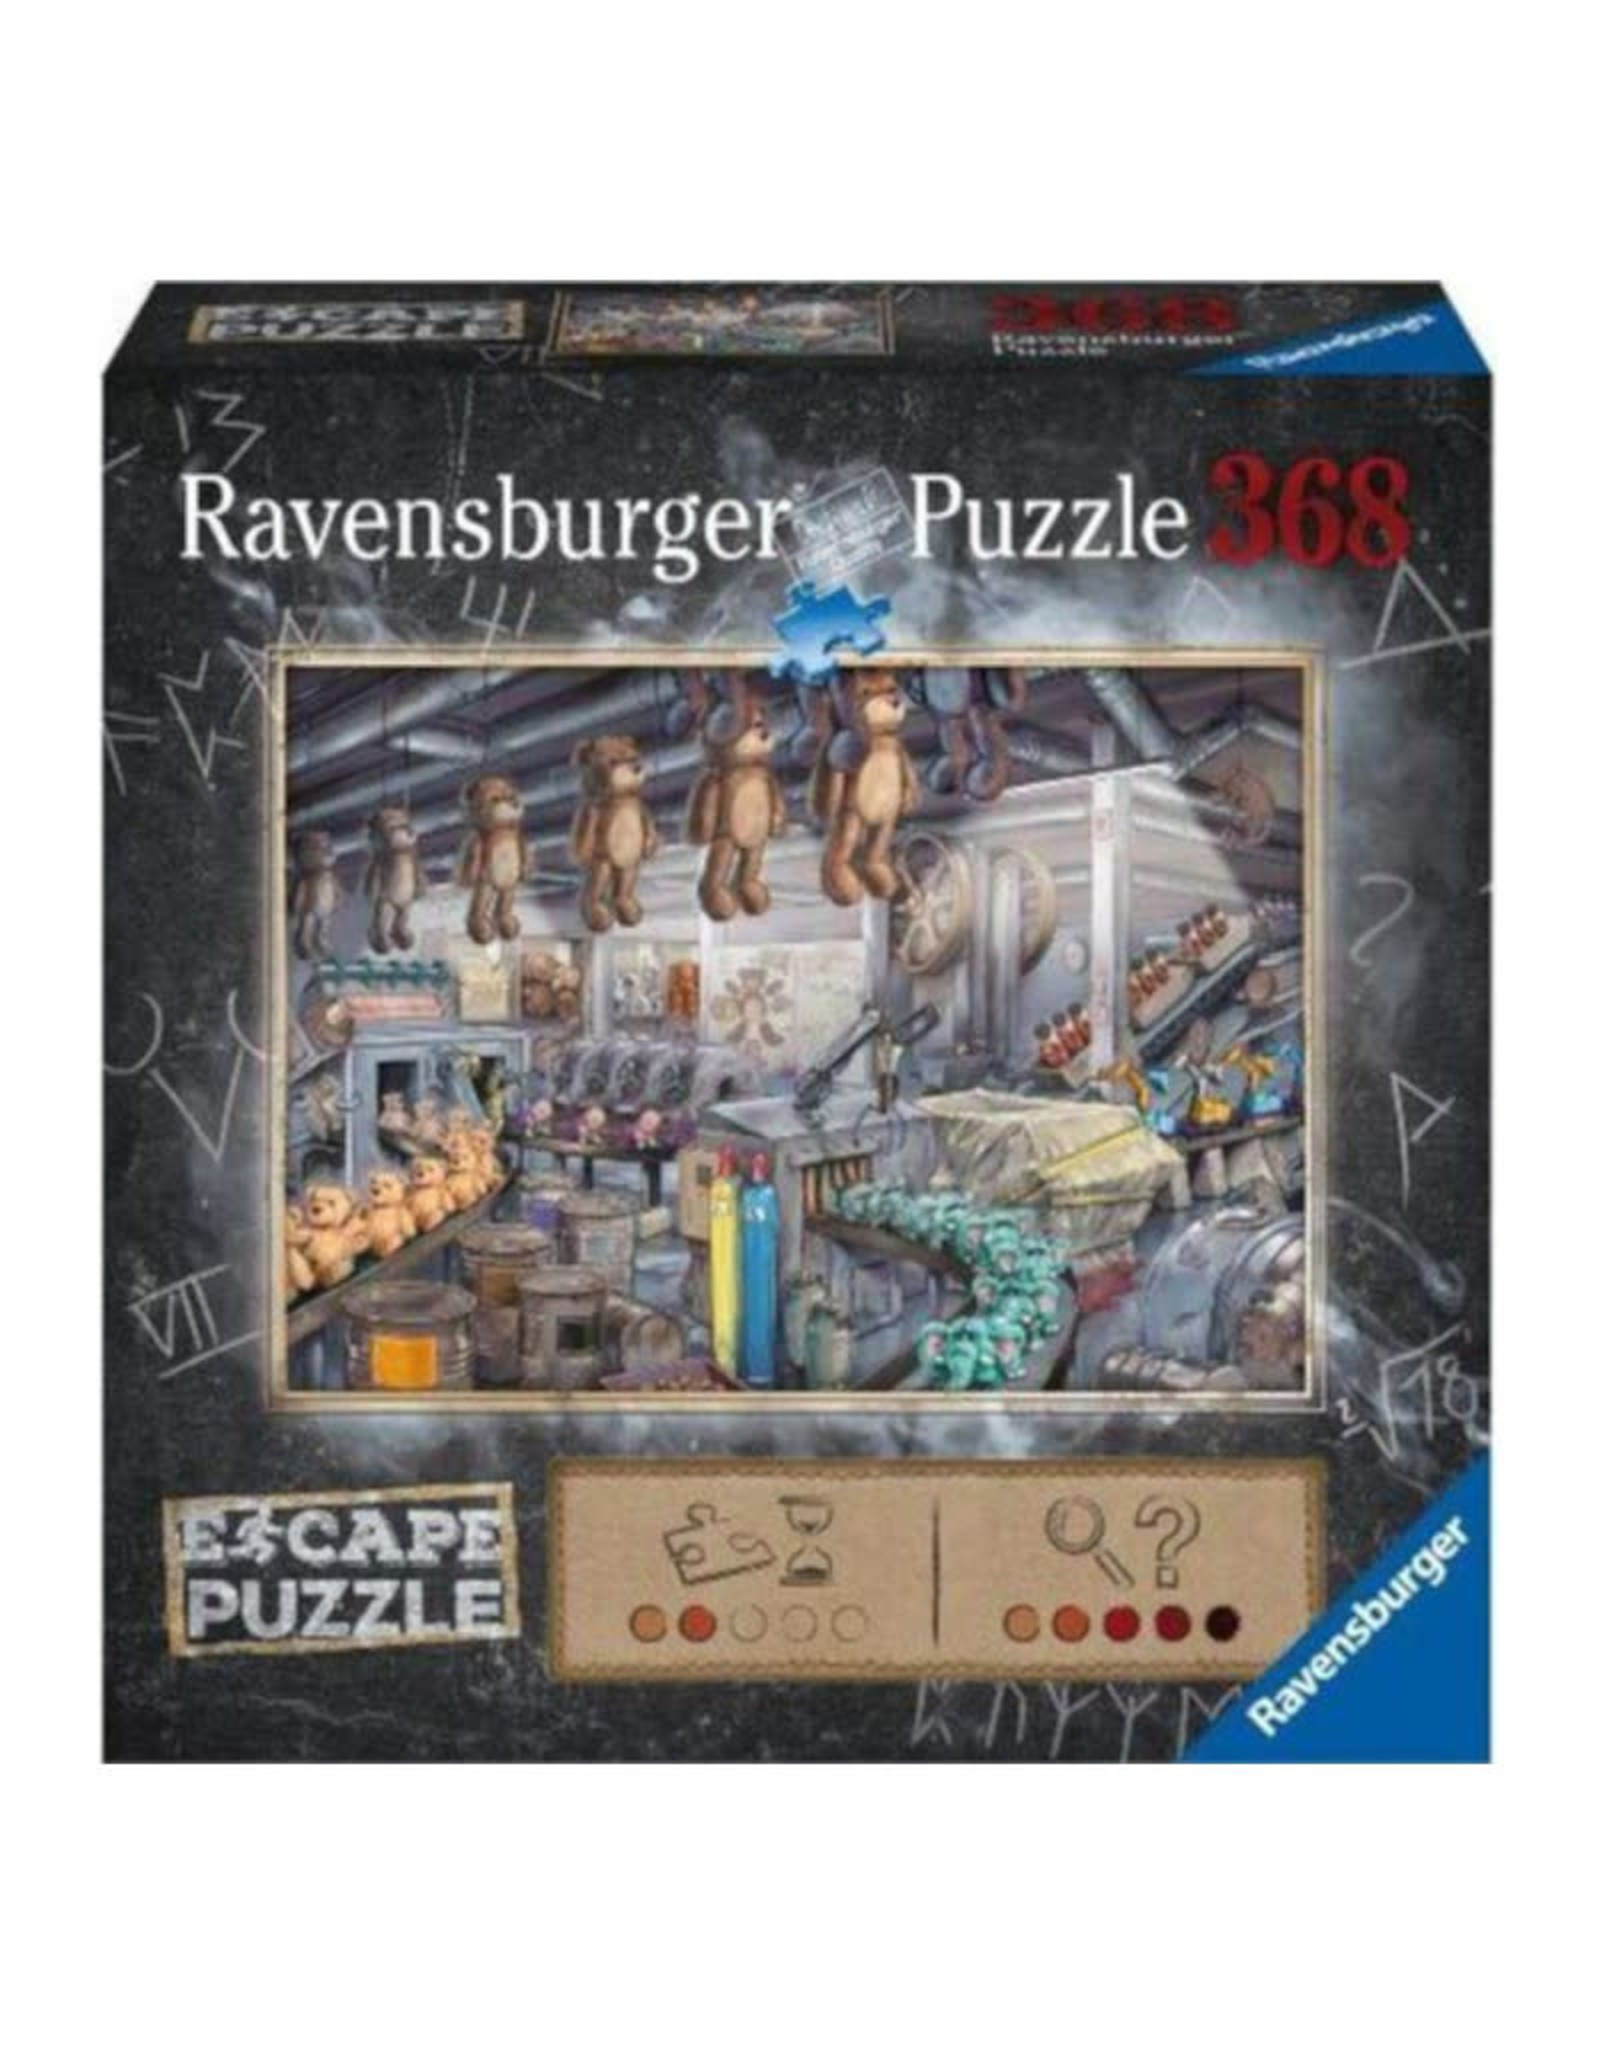 Ravensburger Toy Factory Escape Puzzle 368 PCS